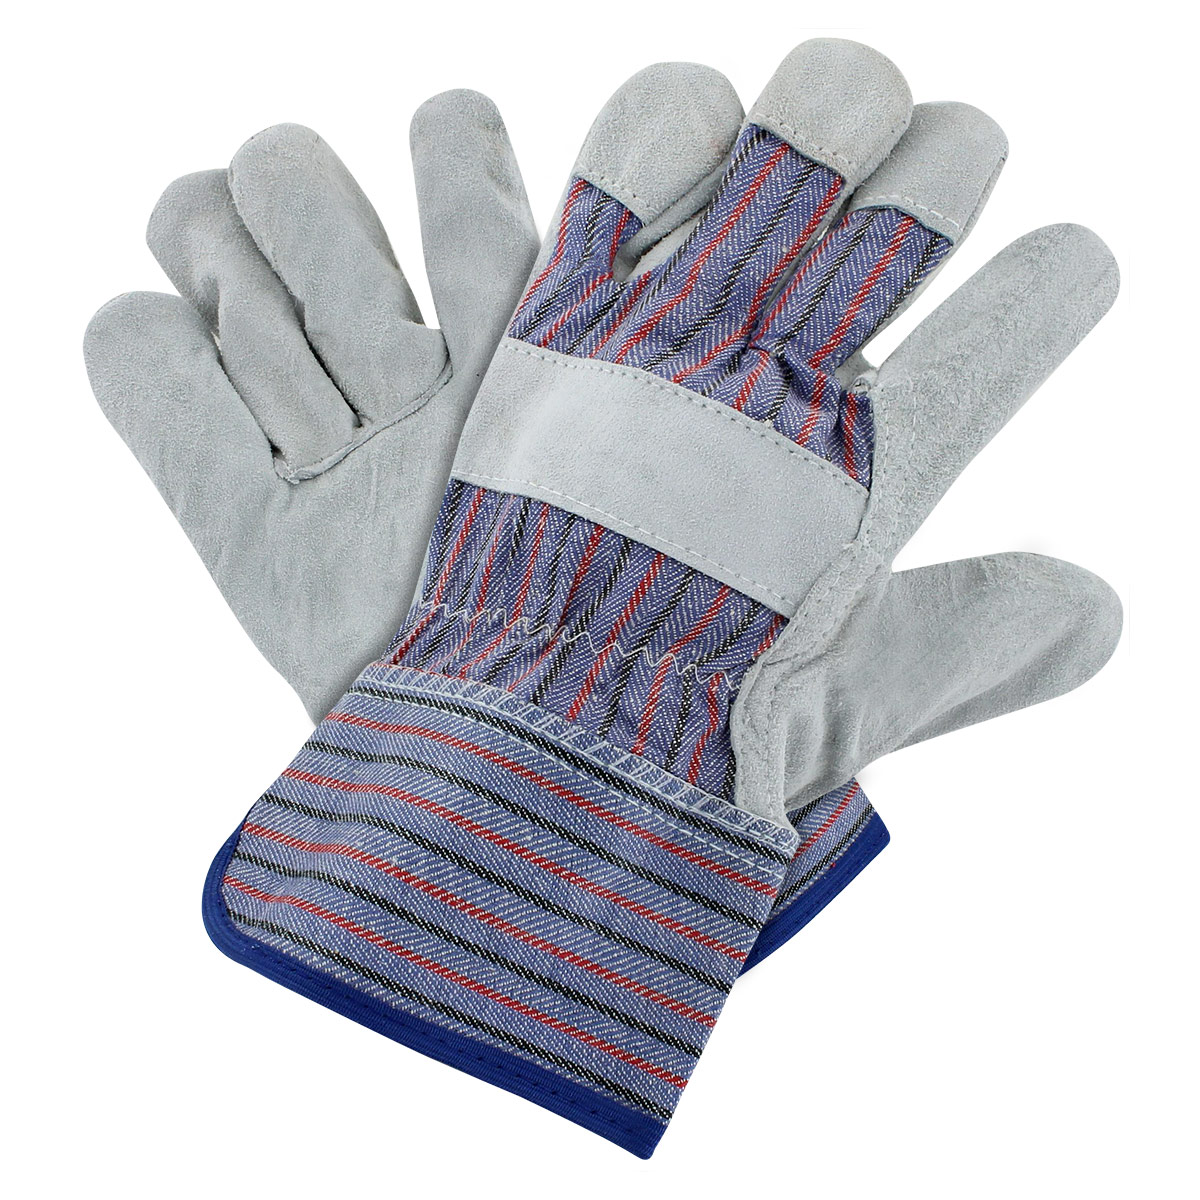 Rugged Blue Leather Palm Work Gloves - Large - 12 Pack